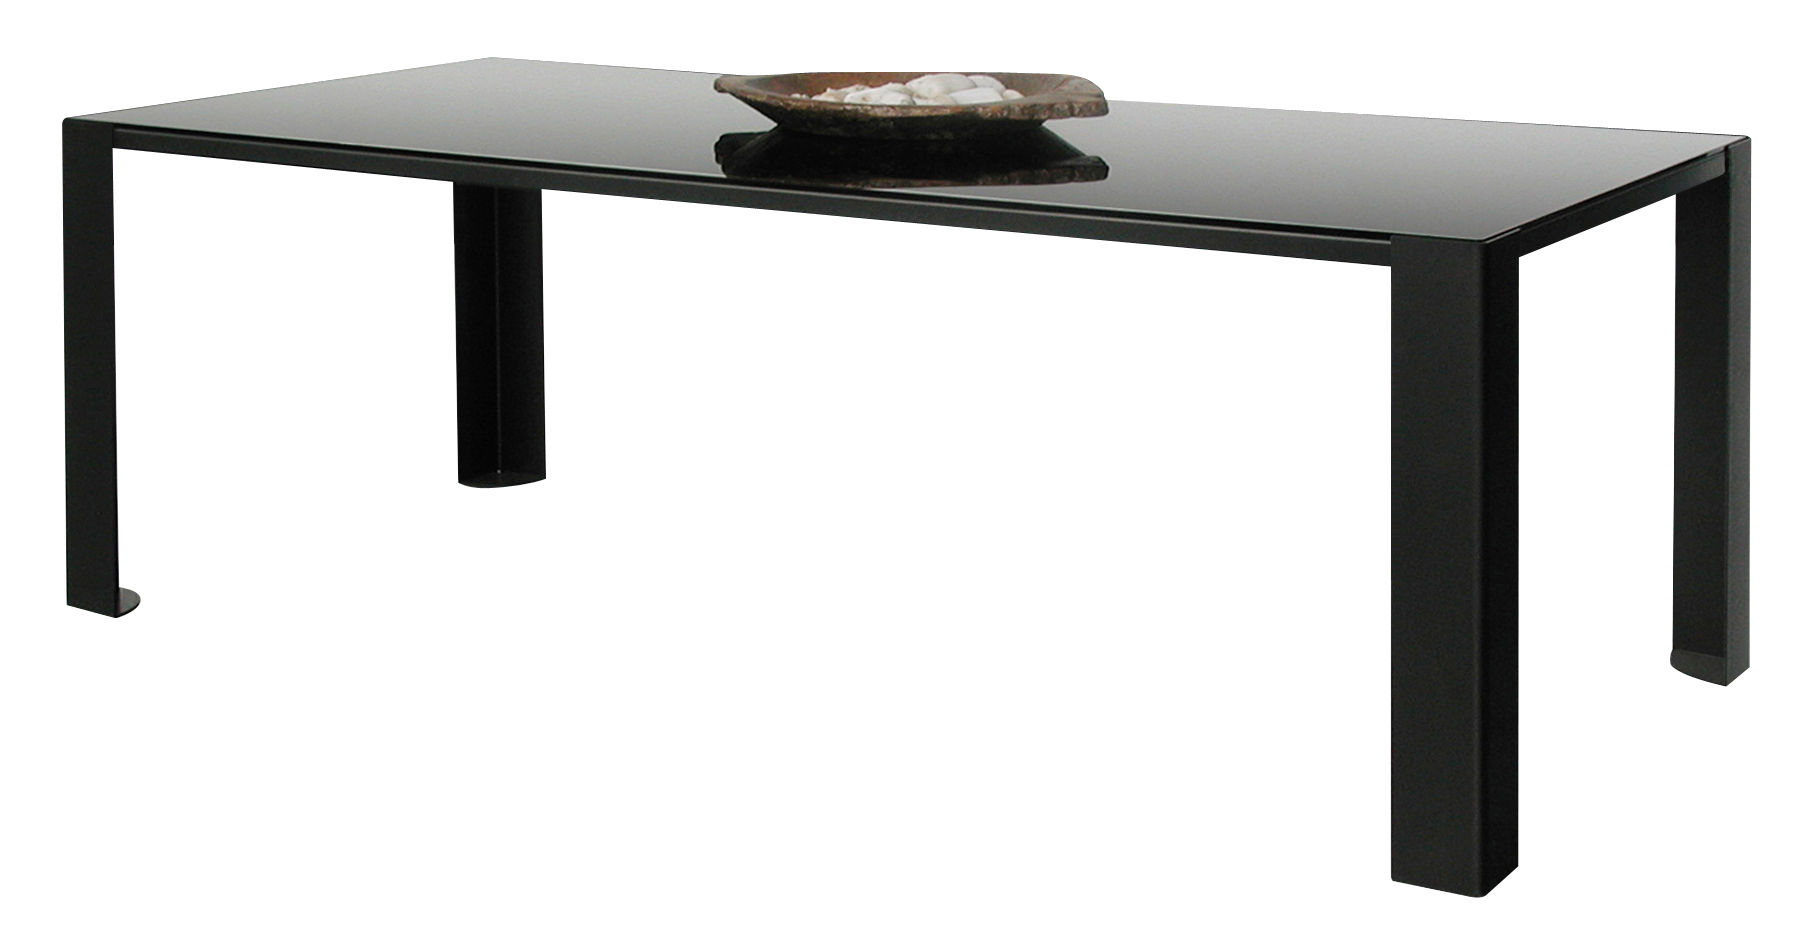 Furniture Dining Tables Big Irony Black Glass Table Top